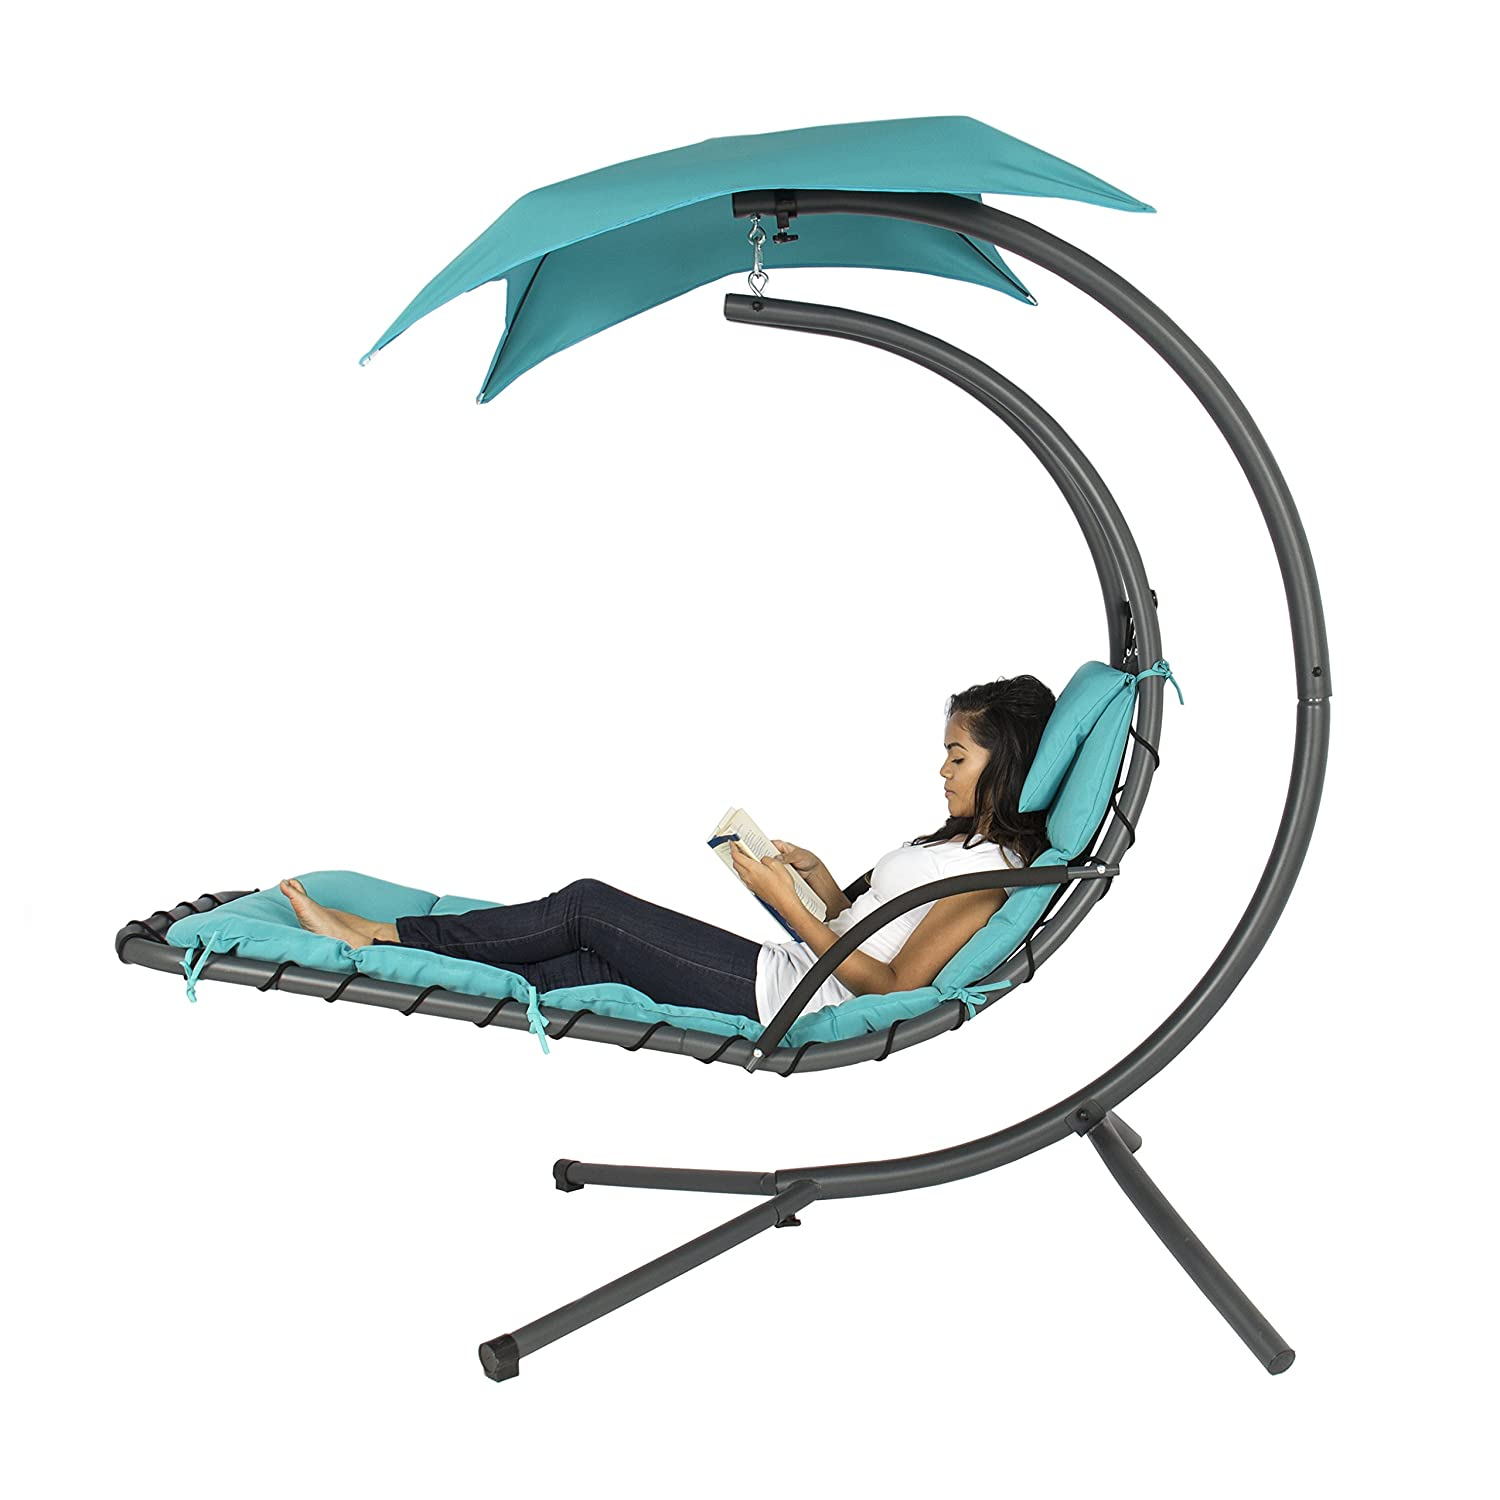 etsustore sale hammock com nz cheap swing for s indoor chairs